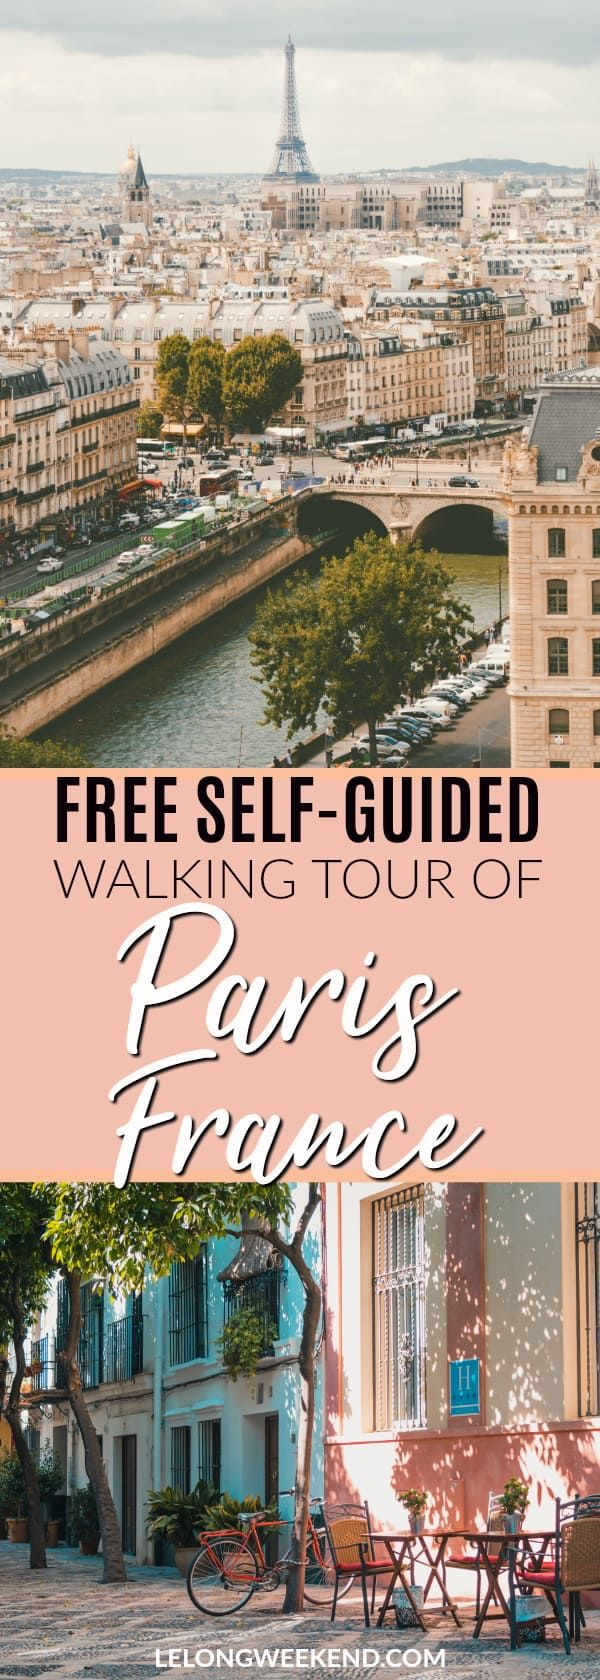 If you only have one day in Paris France, a self-guided walking tour can be a great way to see some of the best sights. We've created a free self-guided walking tour of Paris just for you.